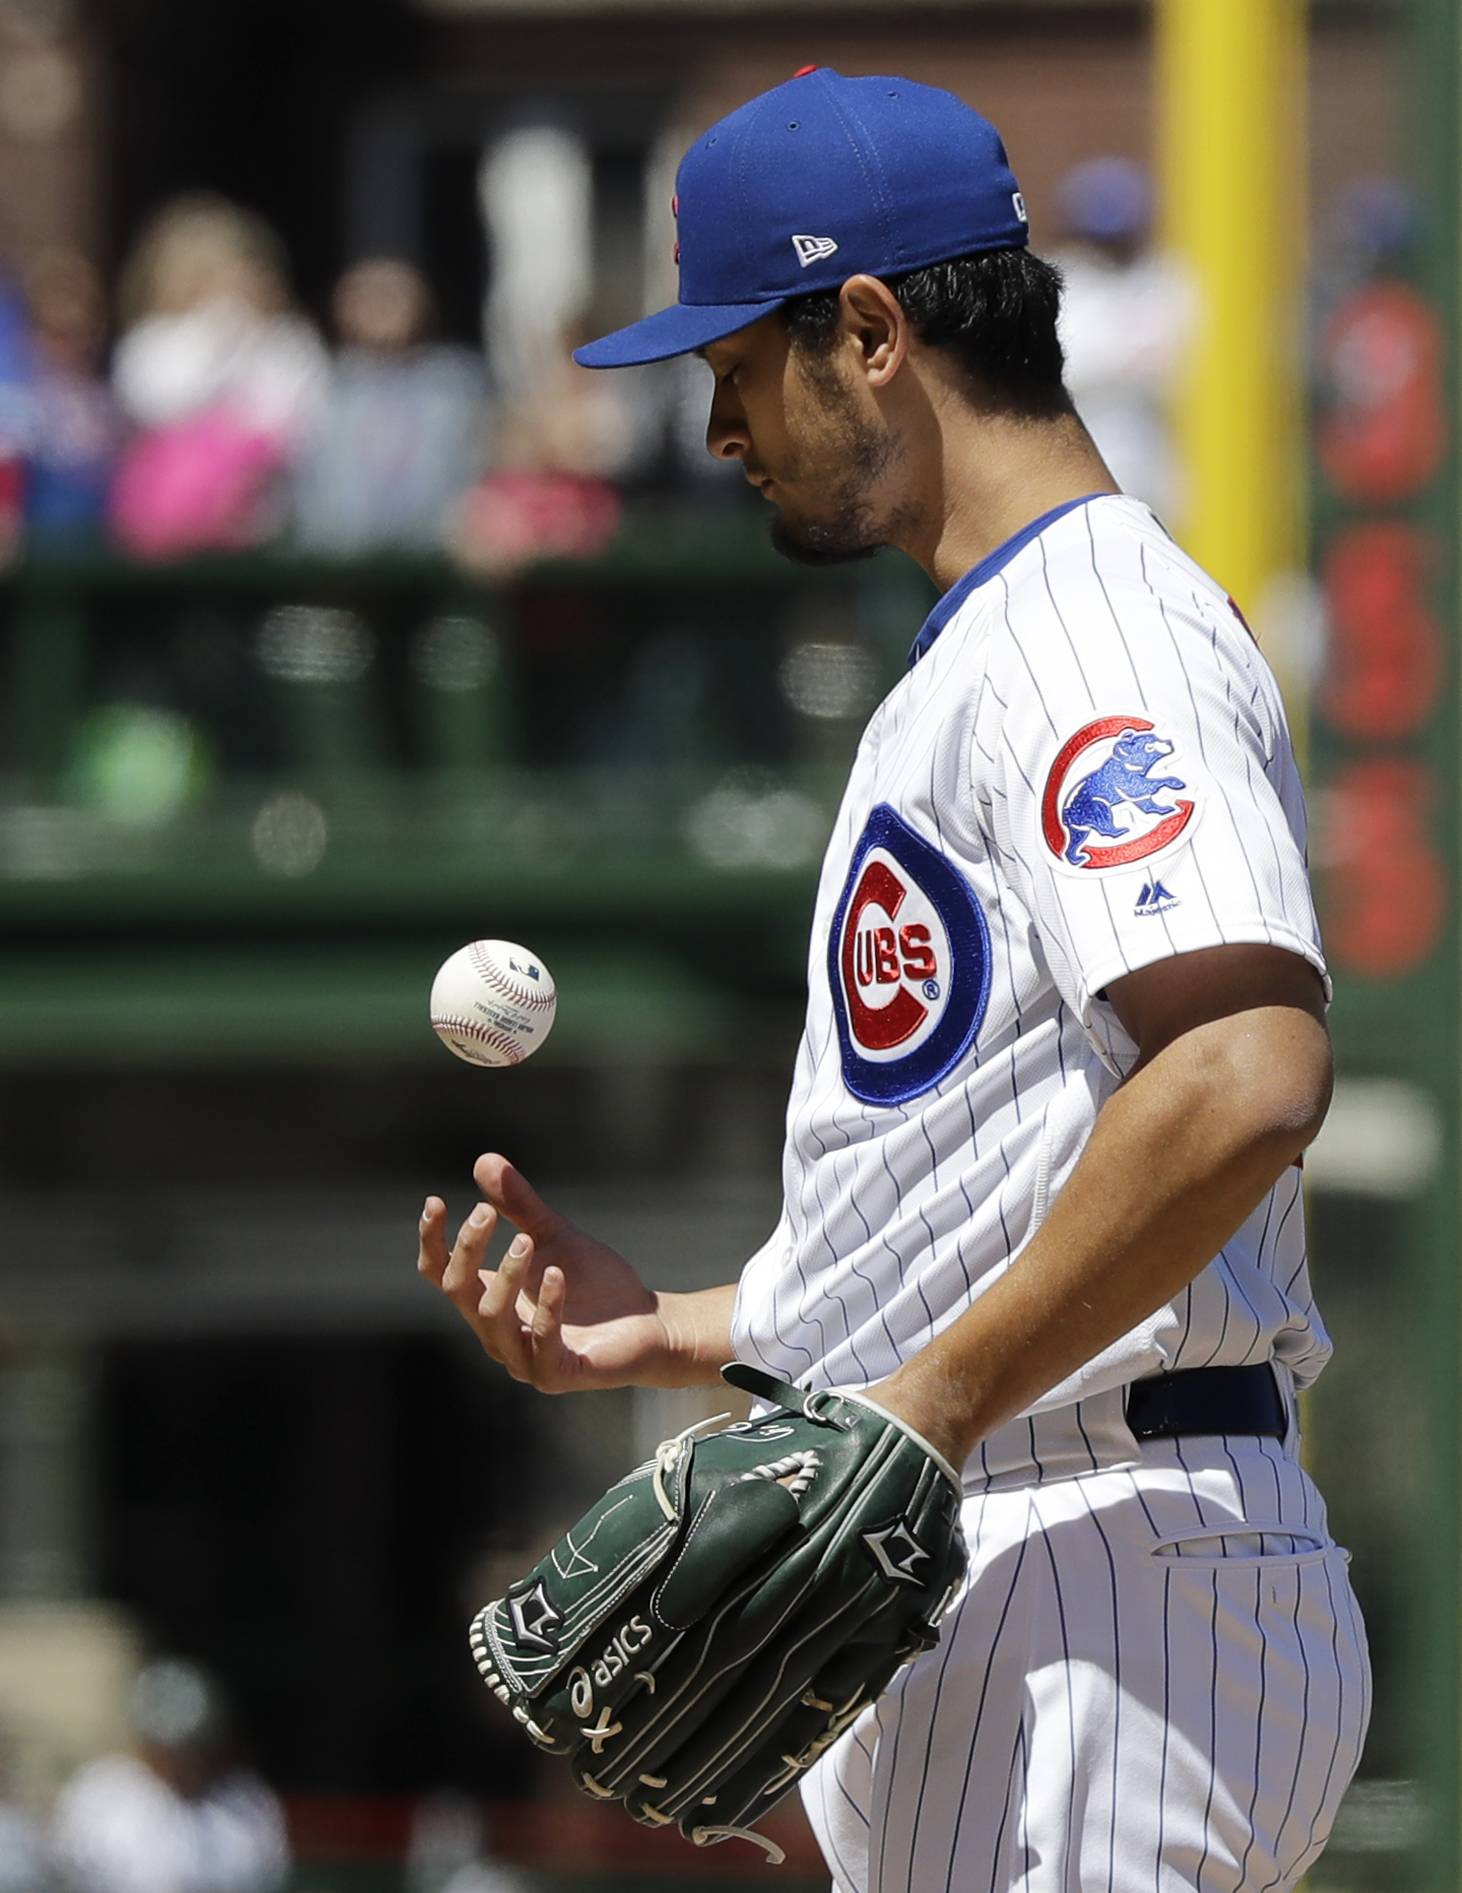 The Arizona Diamondbacks scored twice in the first inning and once in the second Saturday against Chicago Cubs pitcher Yu Darvish and went on to a 6-0 victory at Wrigley Field.